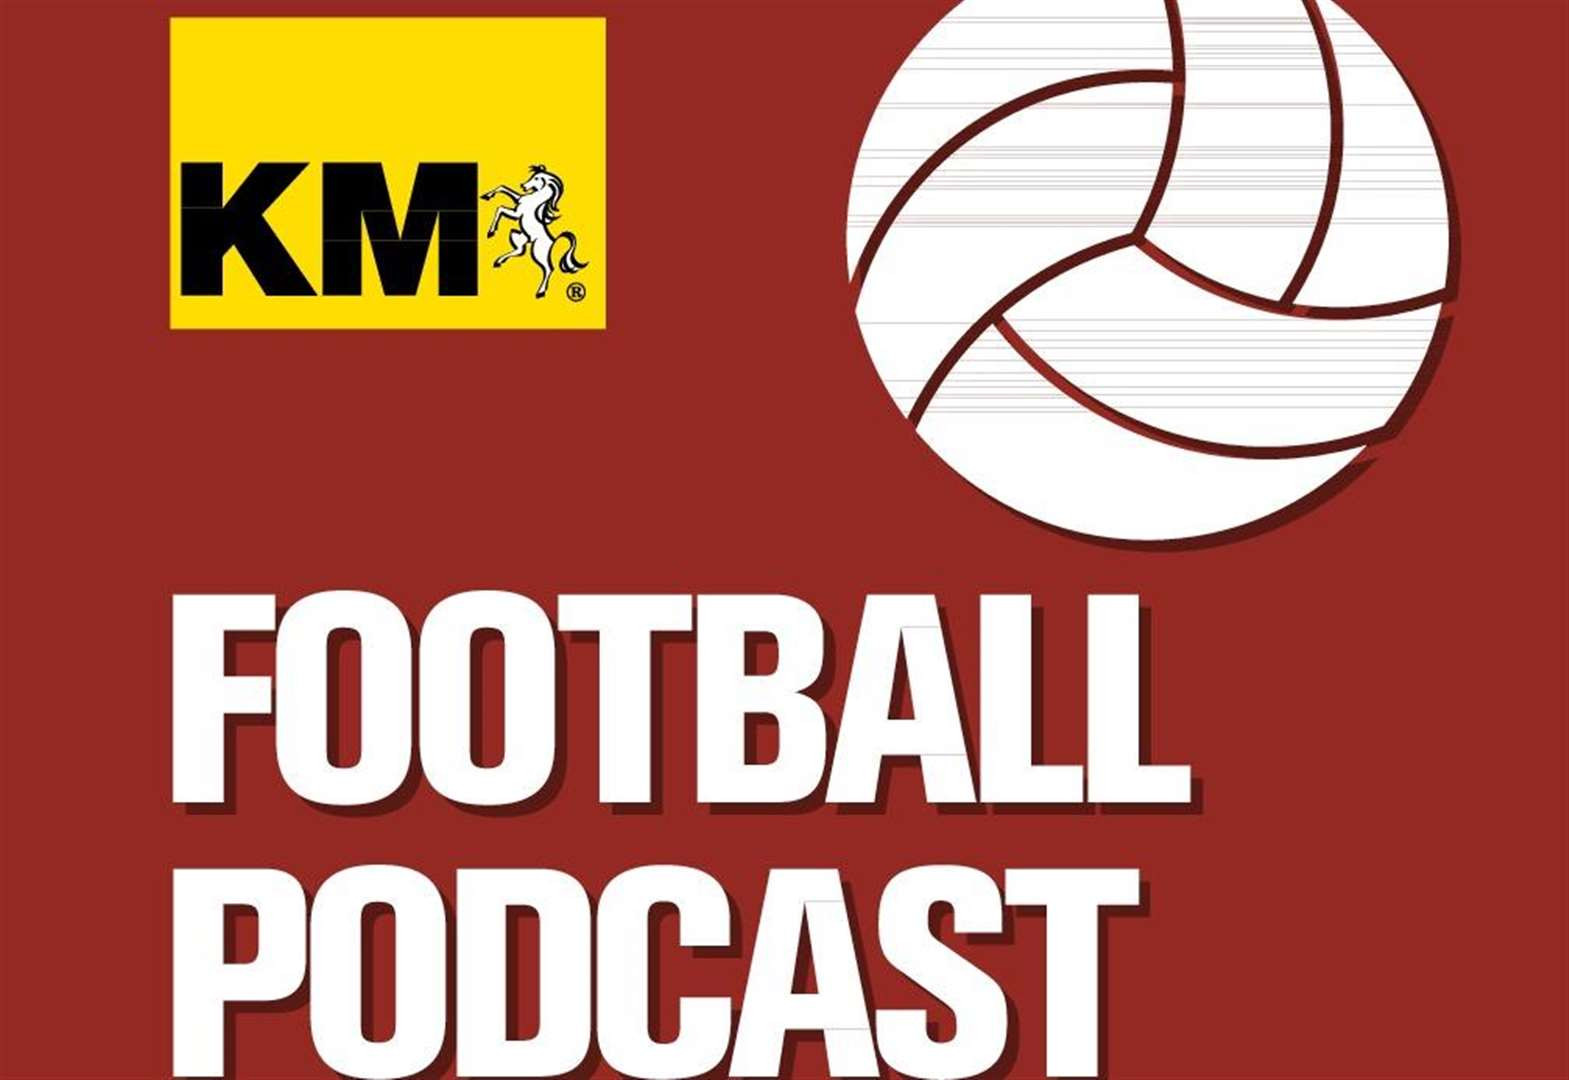 KM Football Podcast episode 7